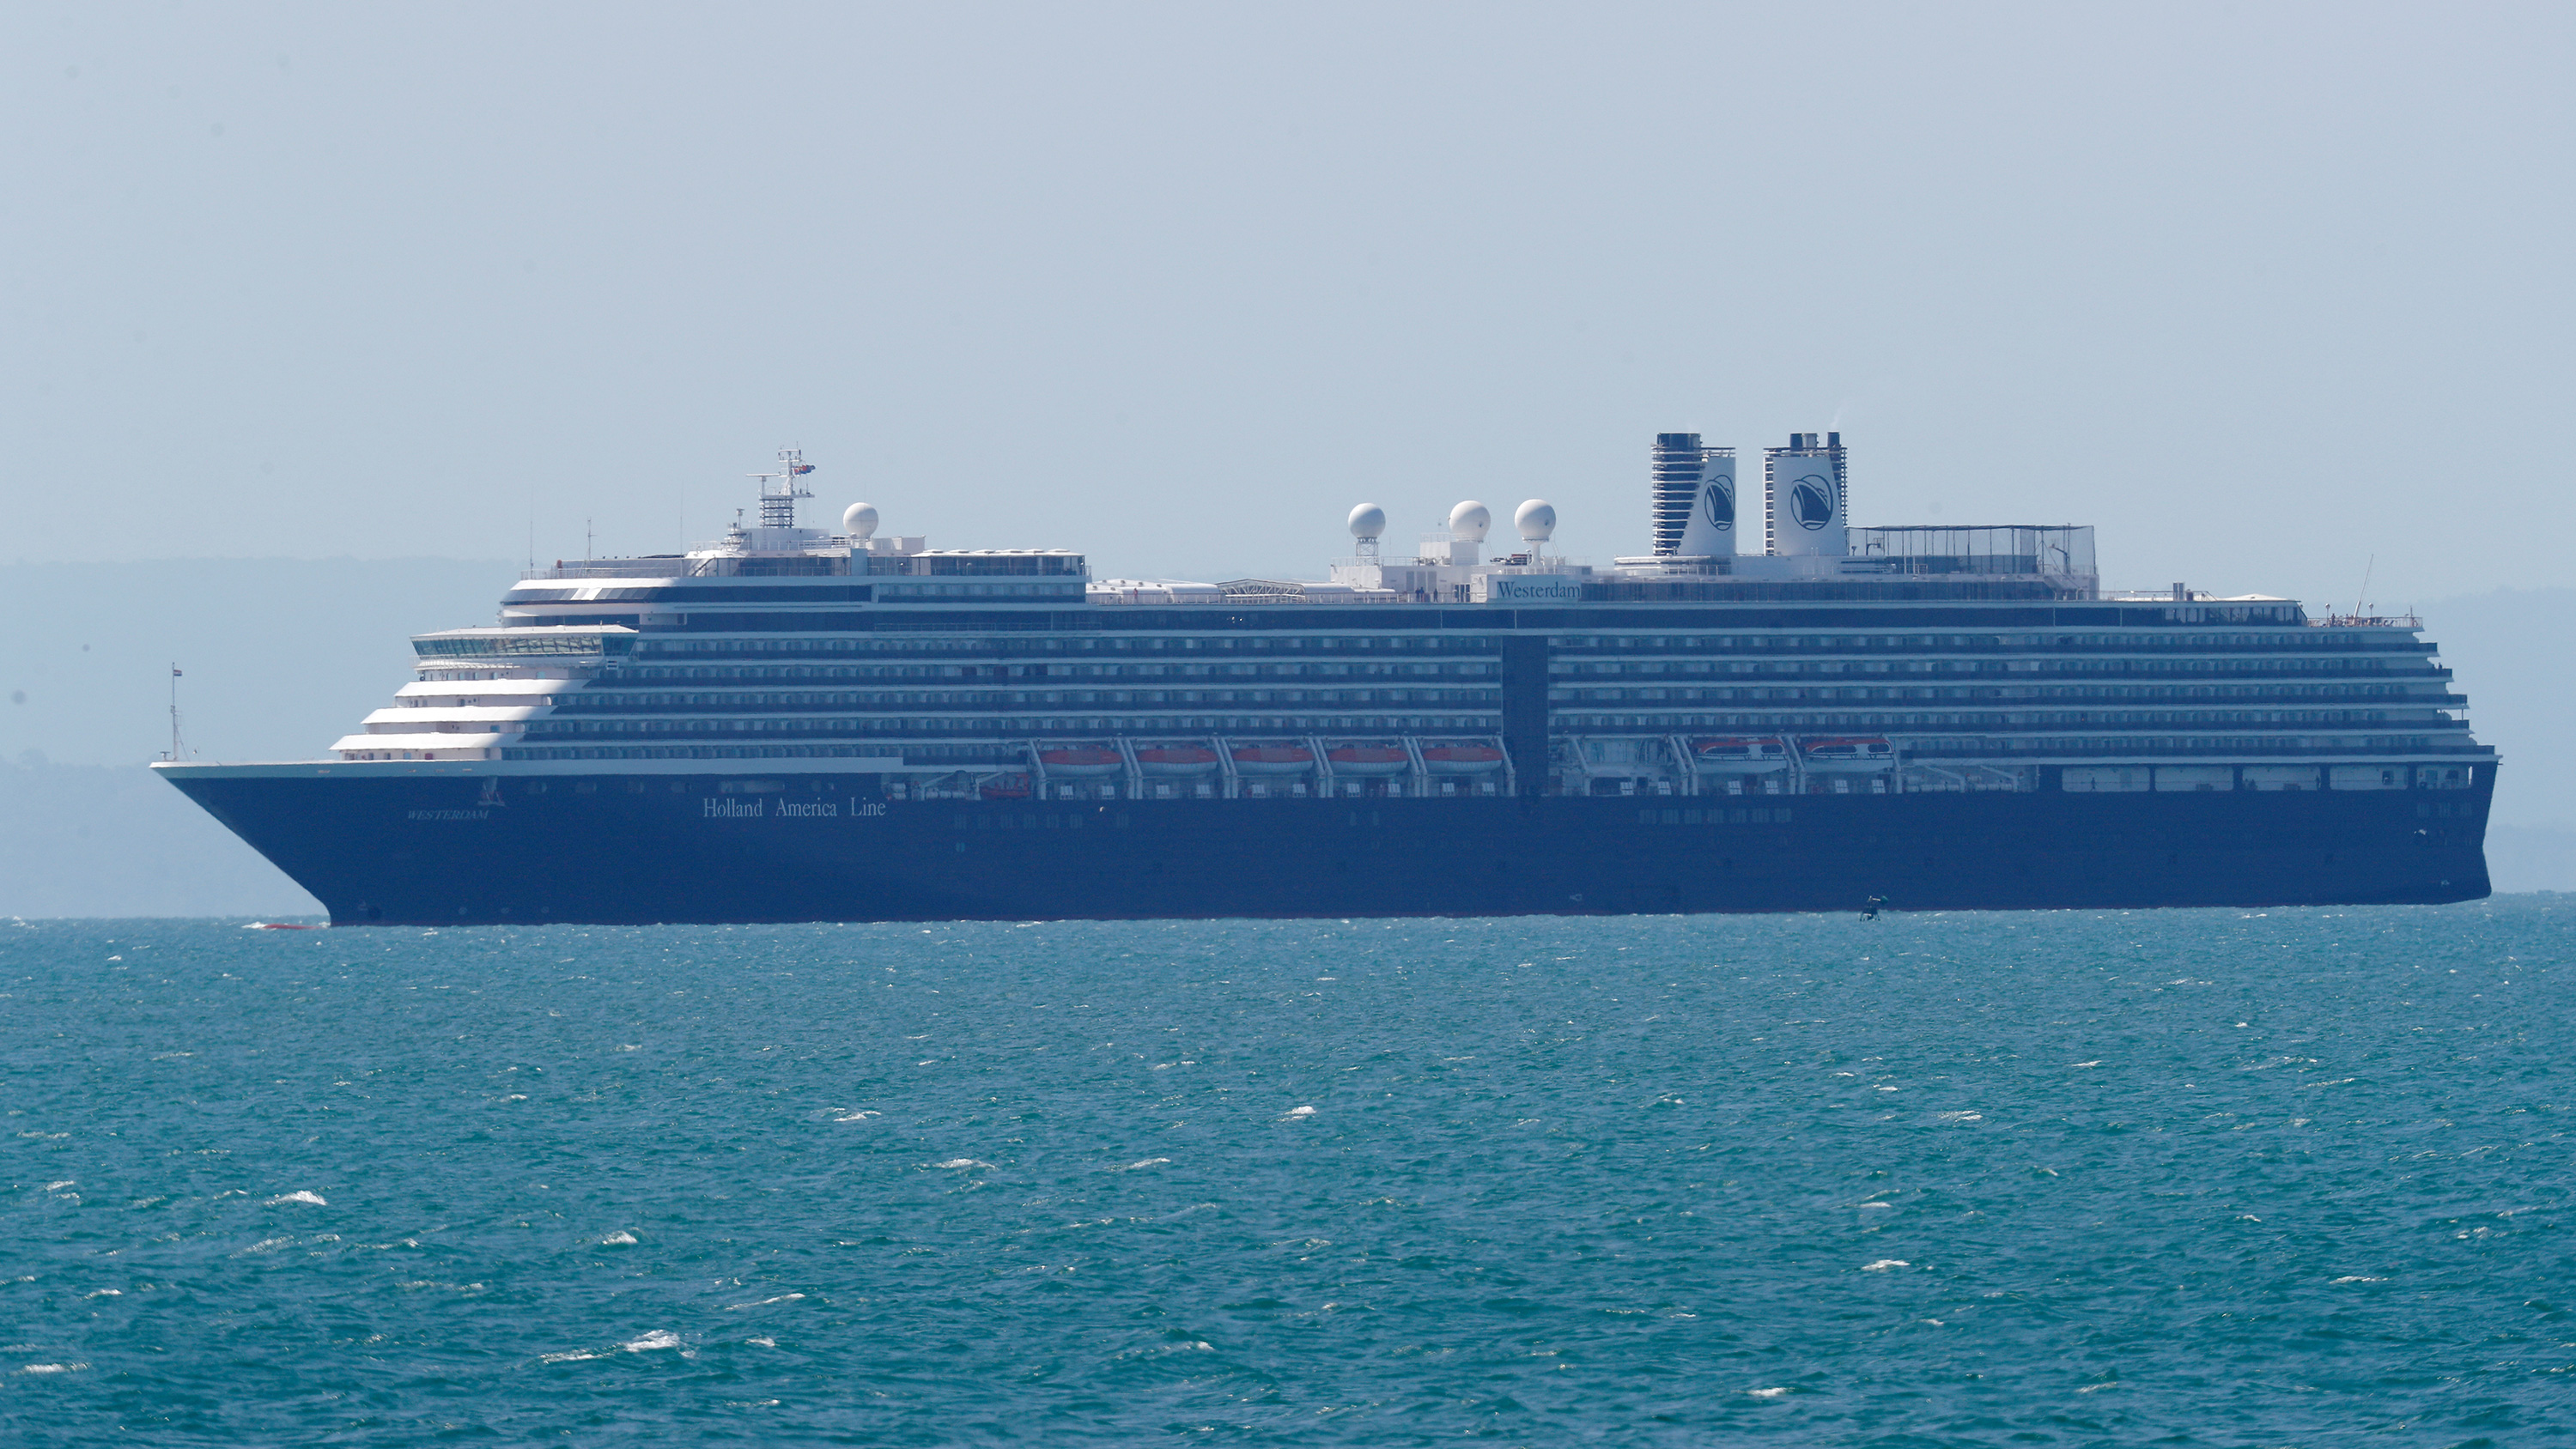 The photo shows a massive luxury cruise ship off in the distance, in a photo presumably taken from shore.